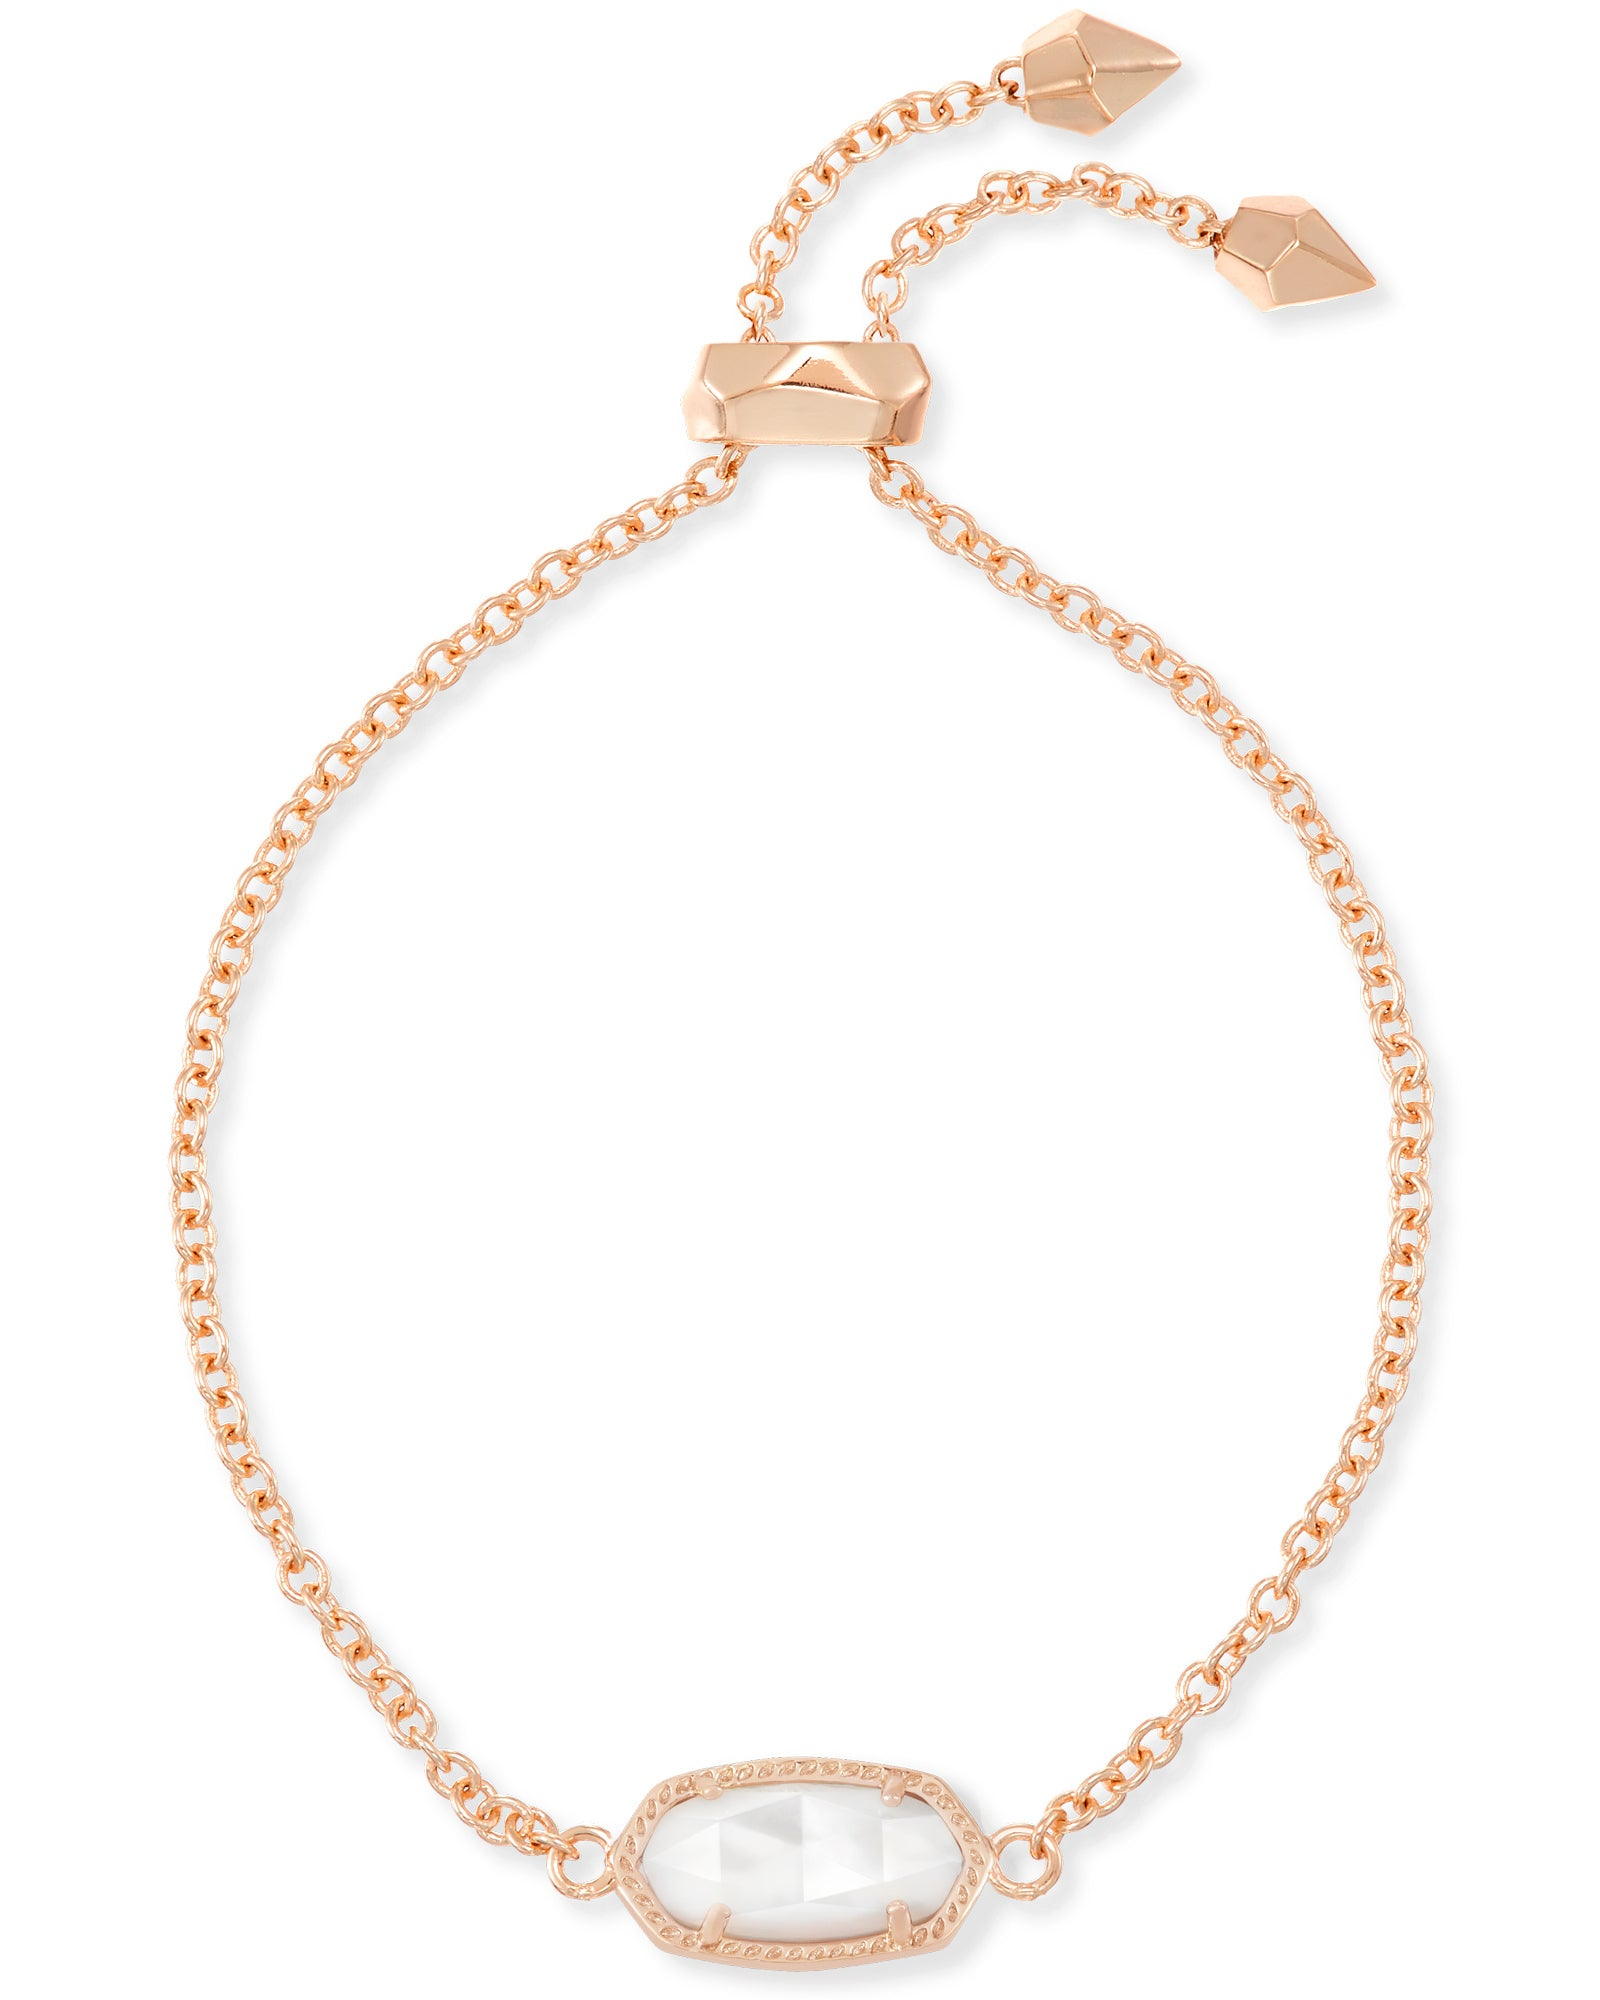 Elaina Bracelet in Rose Gold